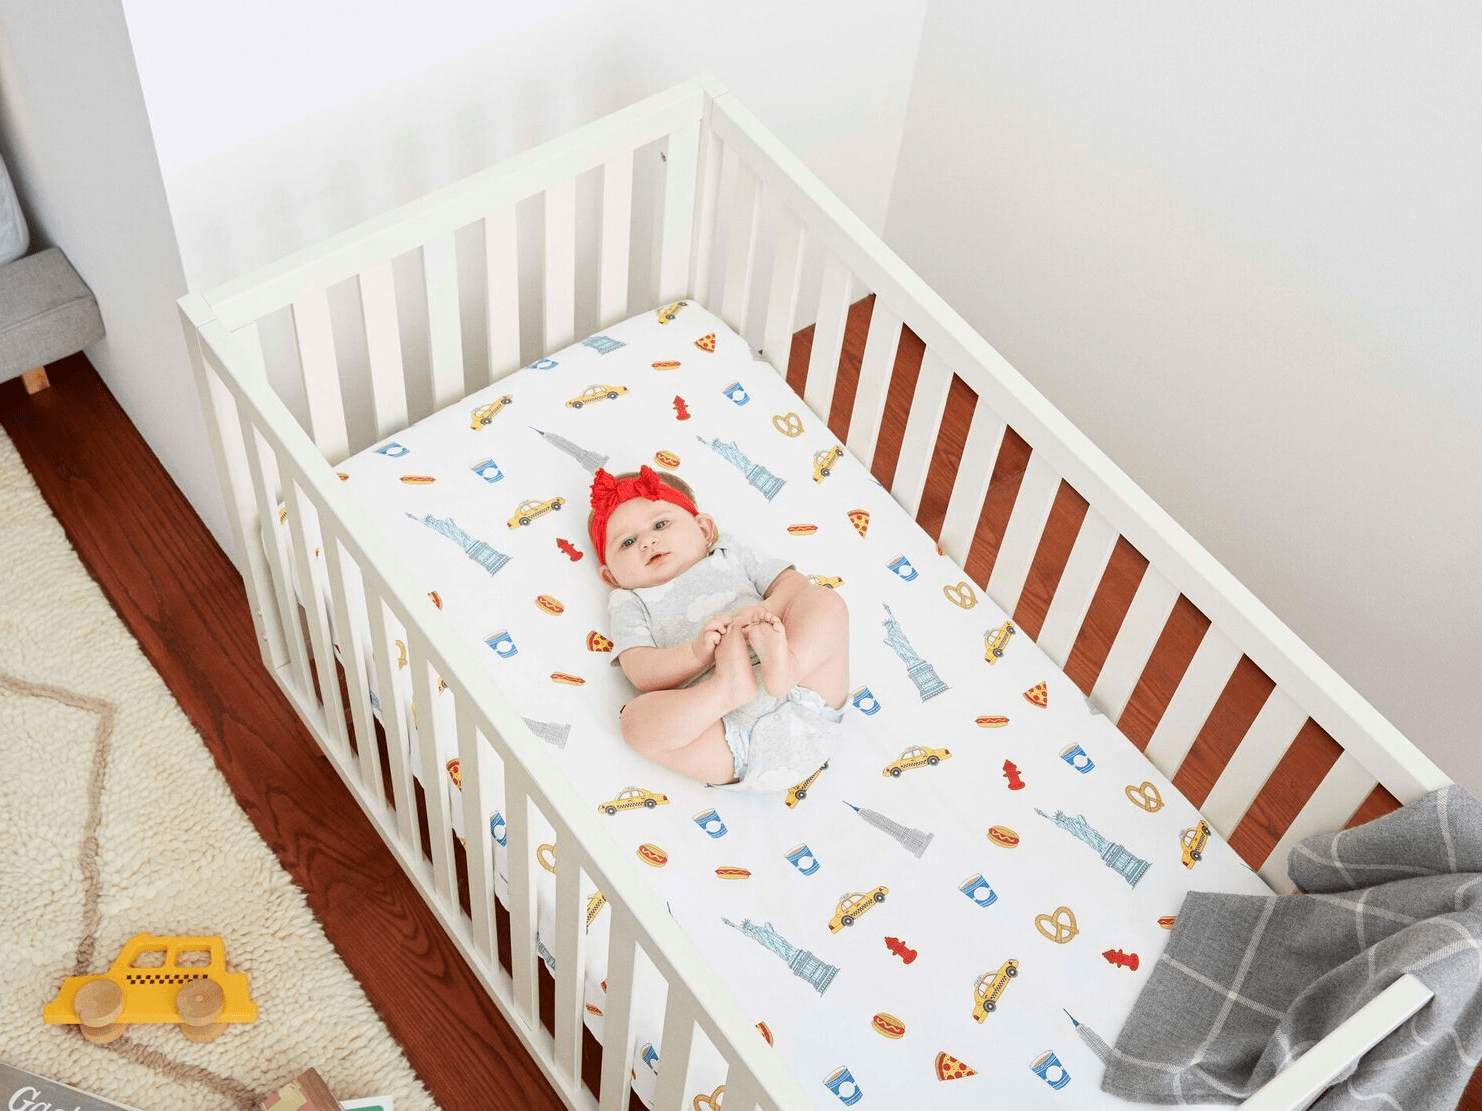 Baby Cradle Sheets Brooklinen Launches Line Of Baby Bedding Adorably Called